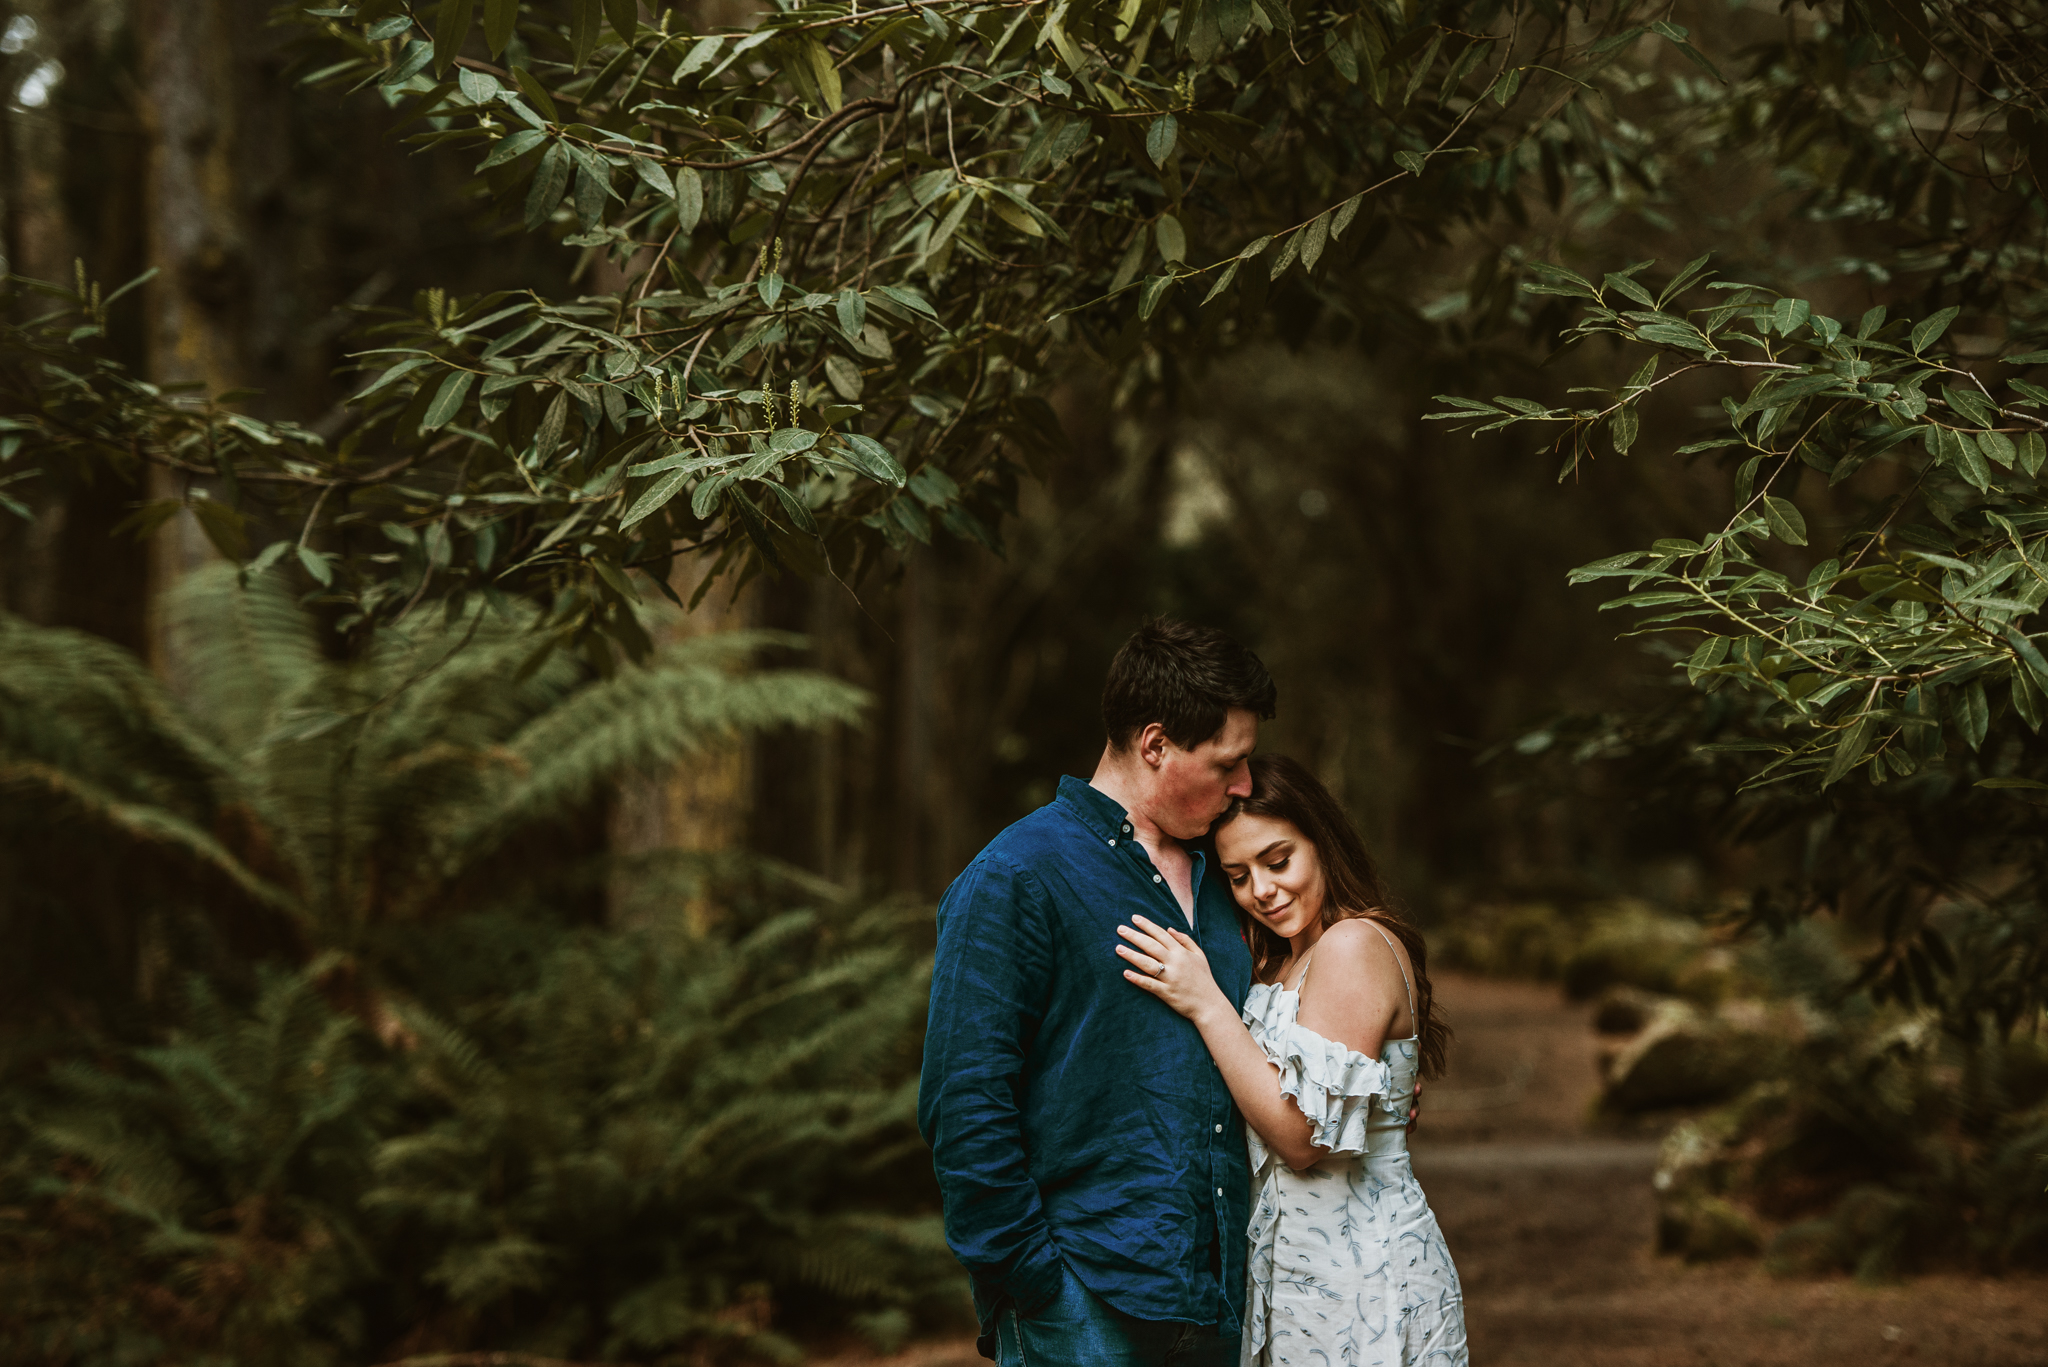 launceston couples photographer-24.jpg